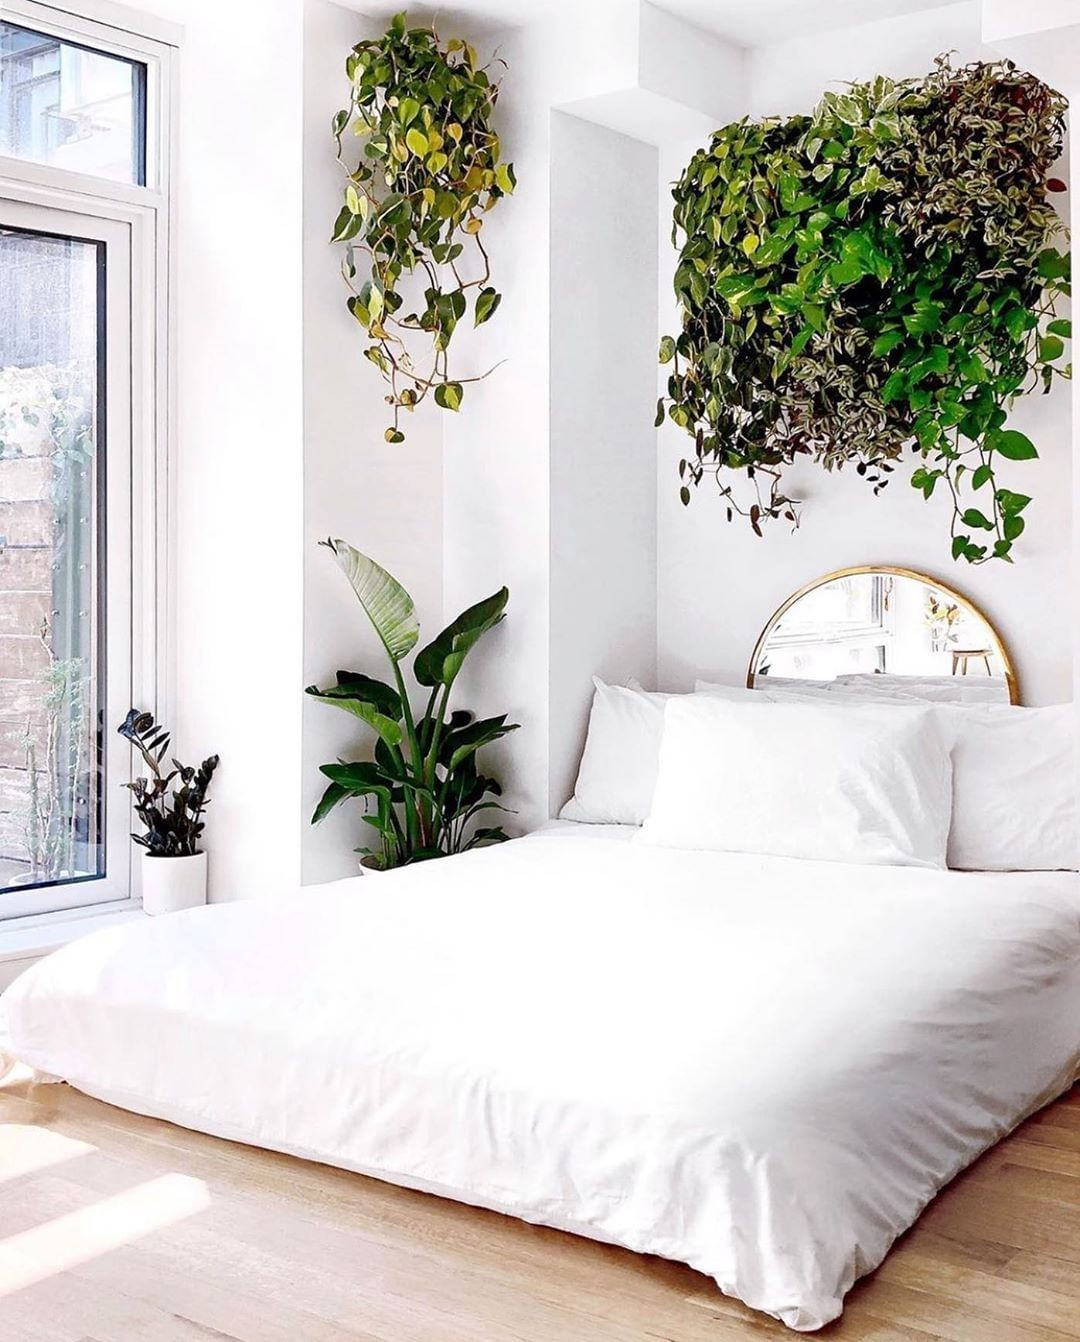 Pin On Living With Plants